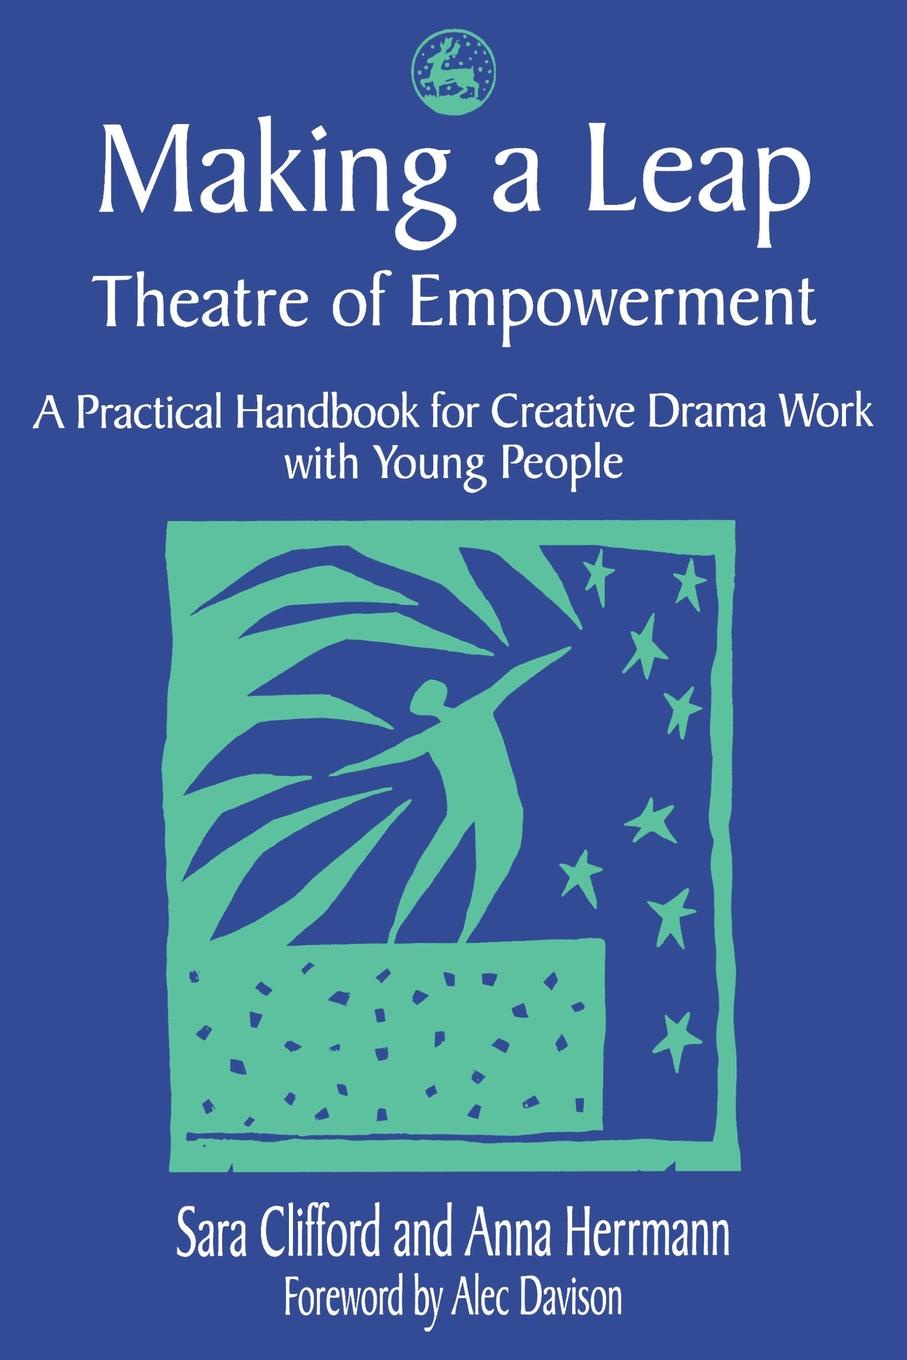 цены Sara Clifford, Anna Herrmann Making a Leap. Theatre of Empowerment: A Practical Handbook for Drama and Theatre Work with Young People